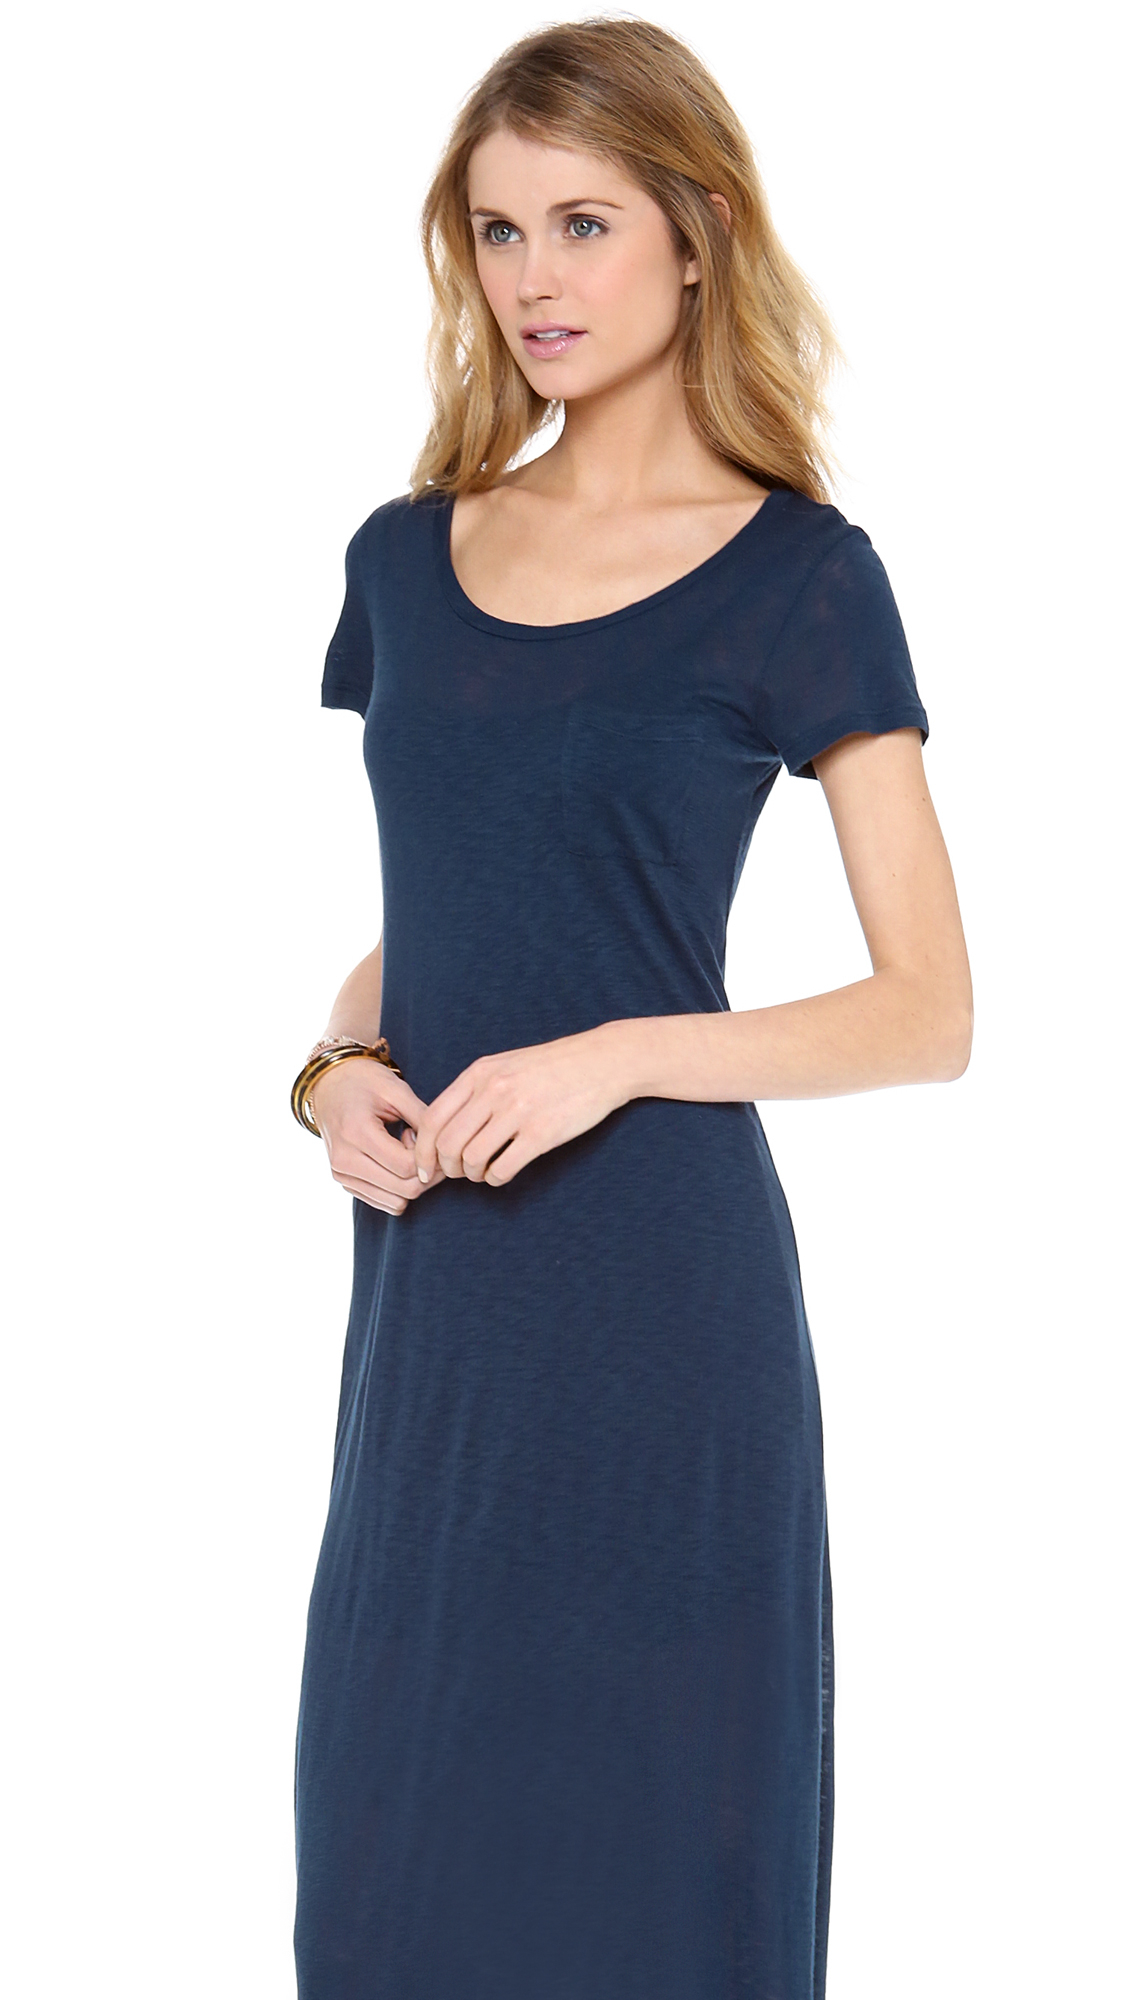 Shirt dresses have been loved for decades and show no sign of leaving the fashion scene for a very long time. Generally speaking, they are appropriate for wearing to the office, church or temple, and almost any other place. Most cheap shirt dresses button down the center from neck to hem and have button plackets.